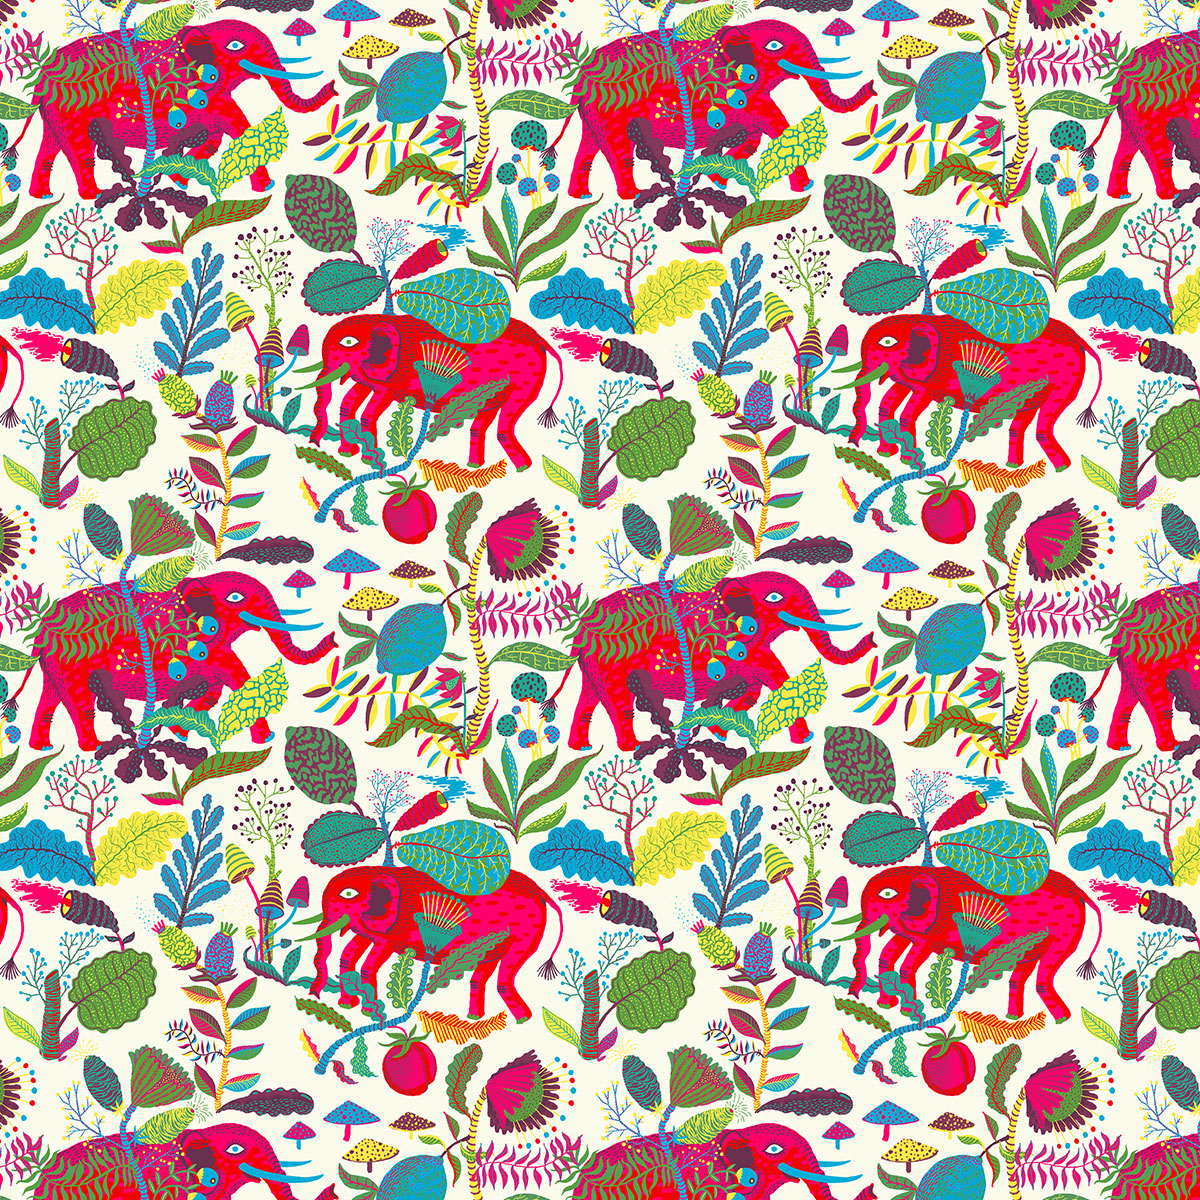 Drew a bunch of baby elephants, stompin' through the jungles of India!